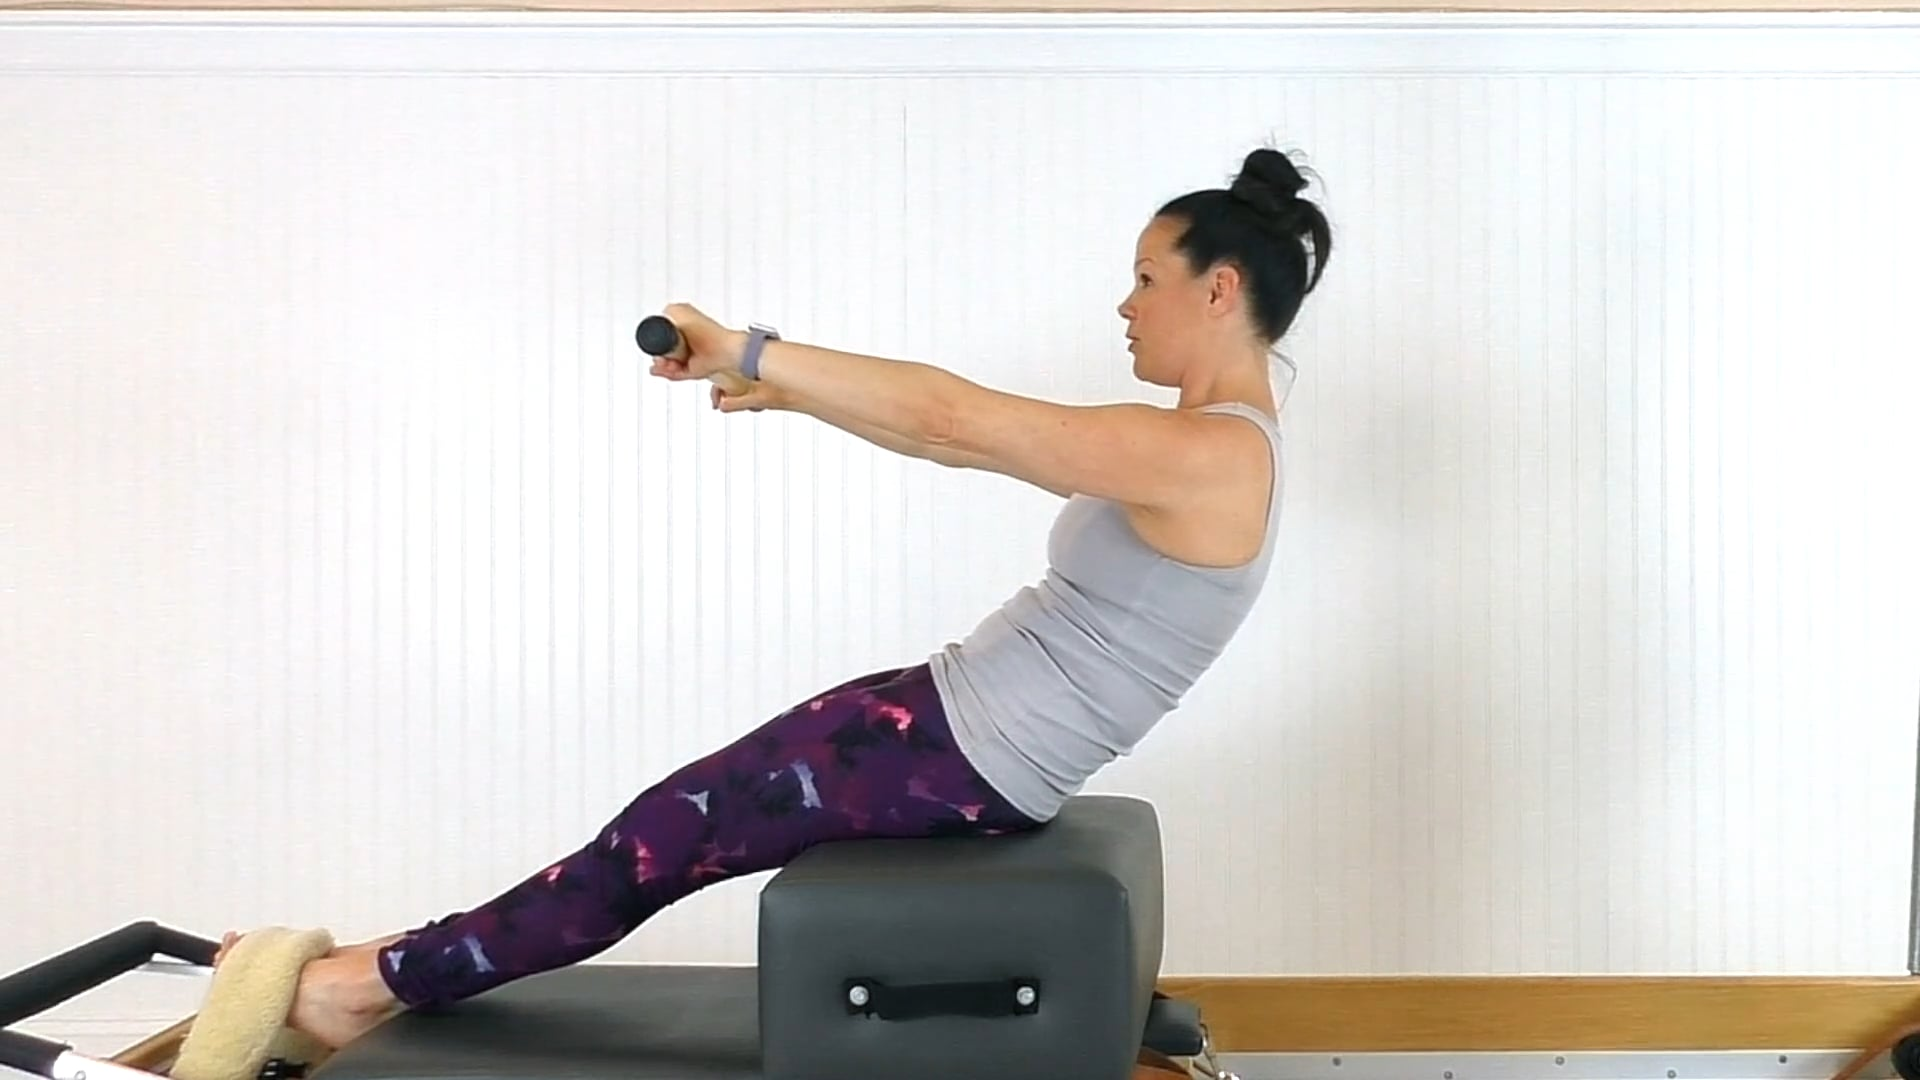 Reformer/Tower Focused on Articulation of the Spine (36 mins)